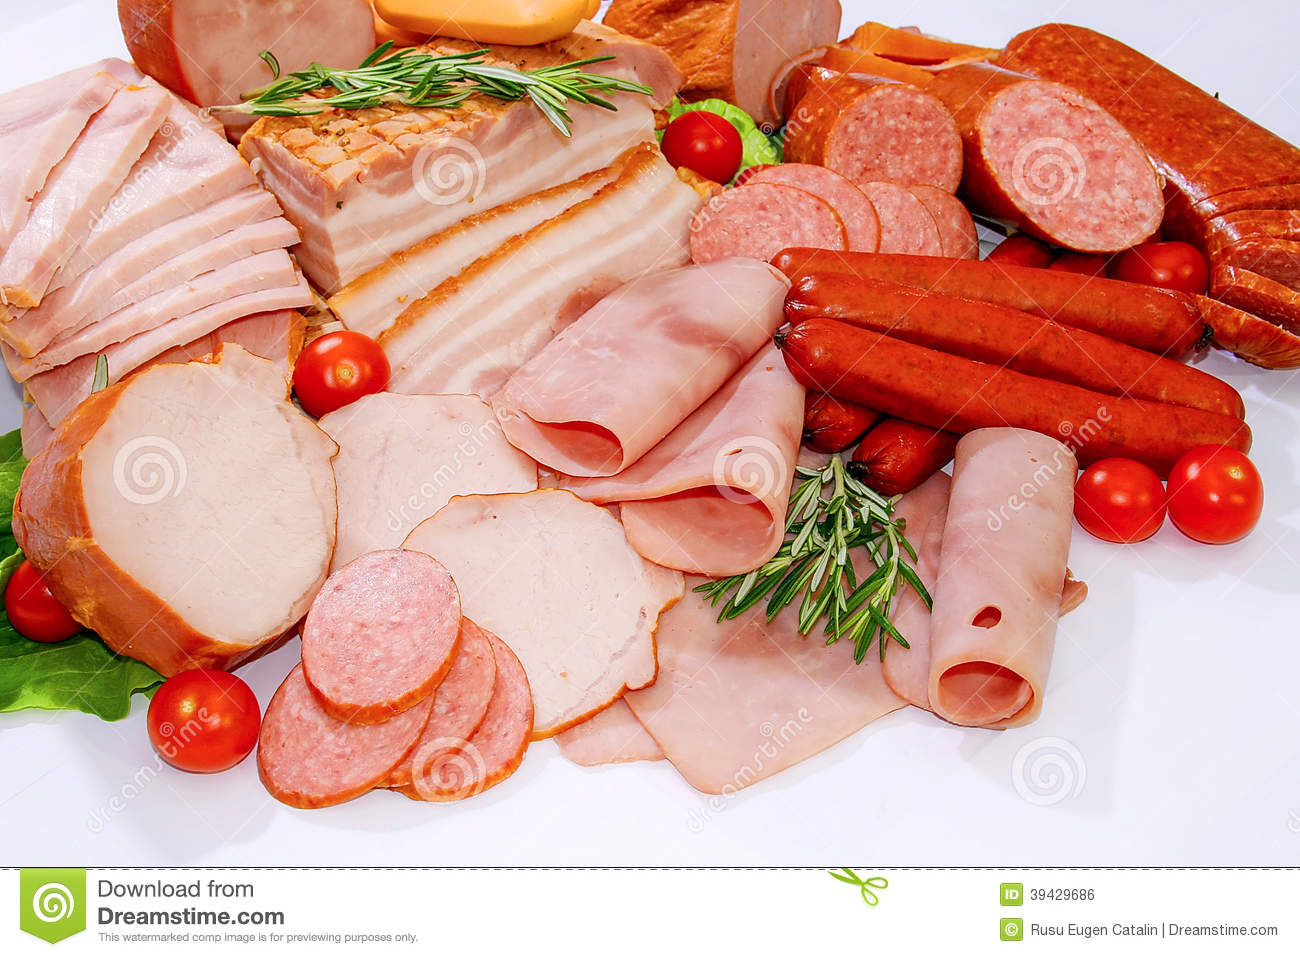 Meat and sausages